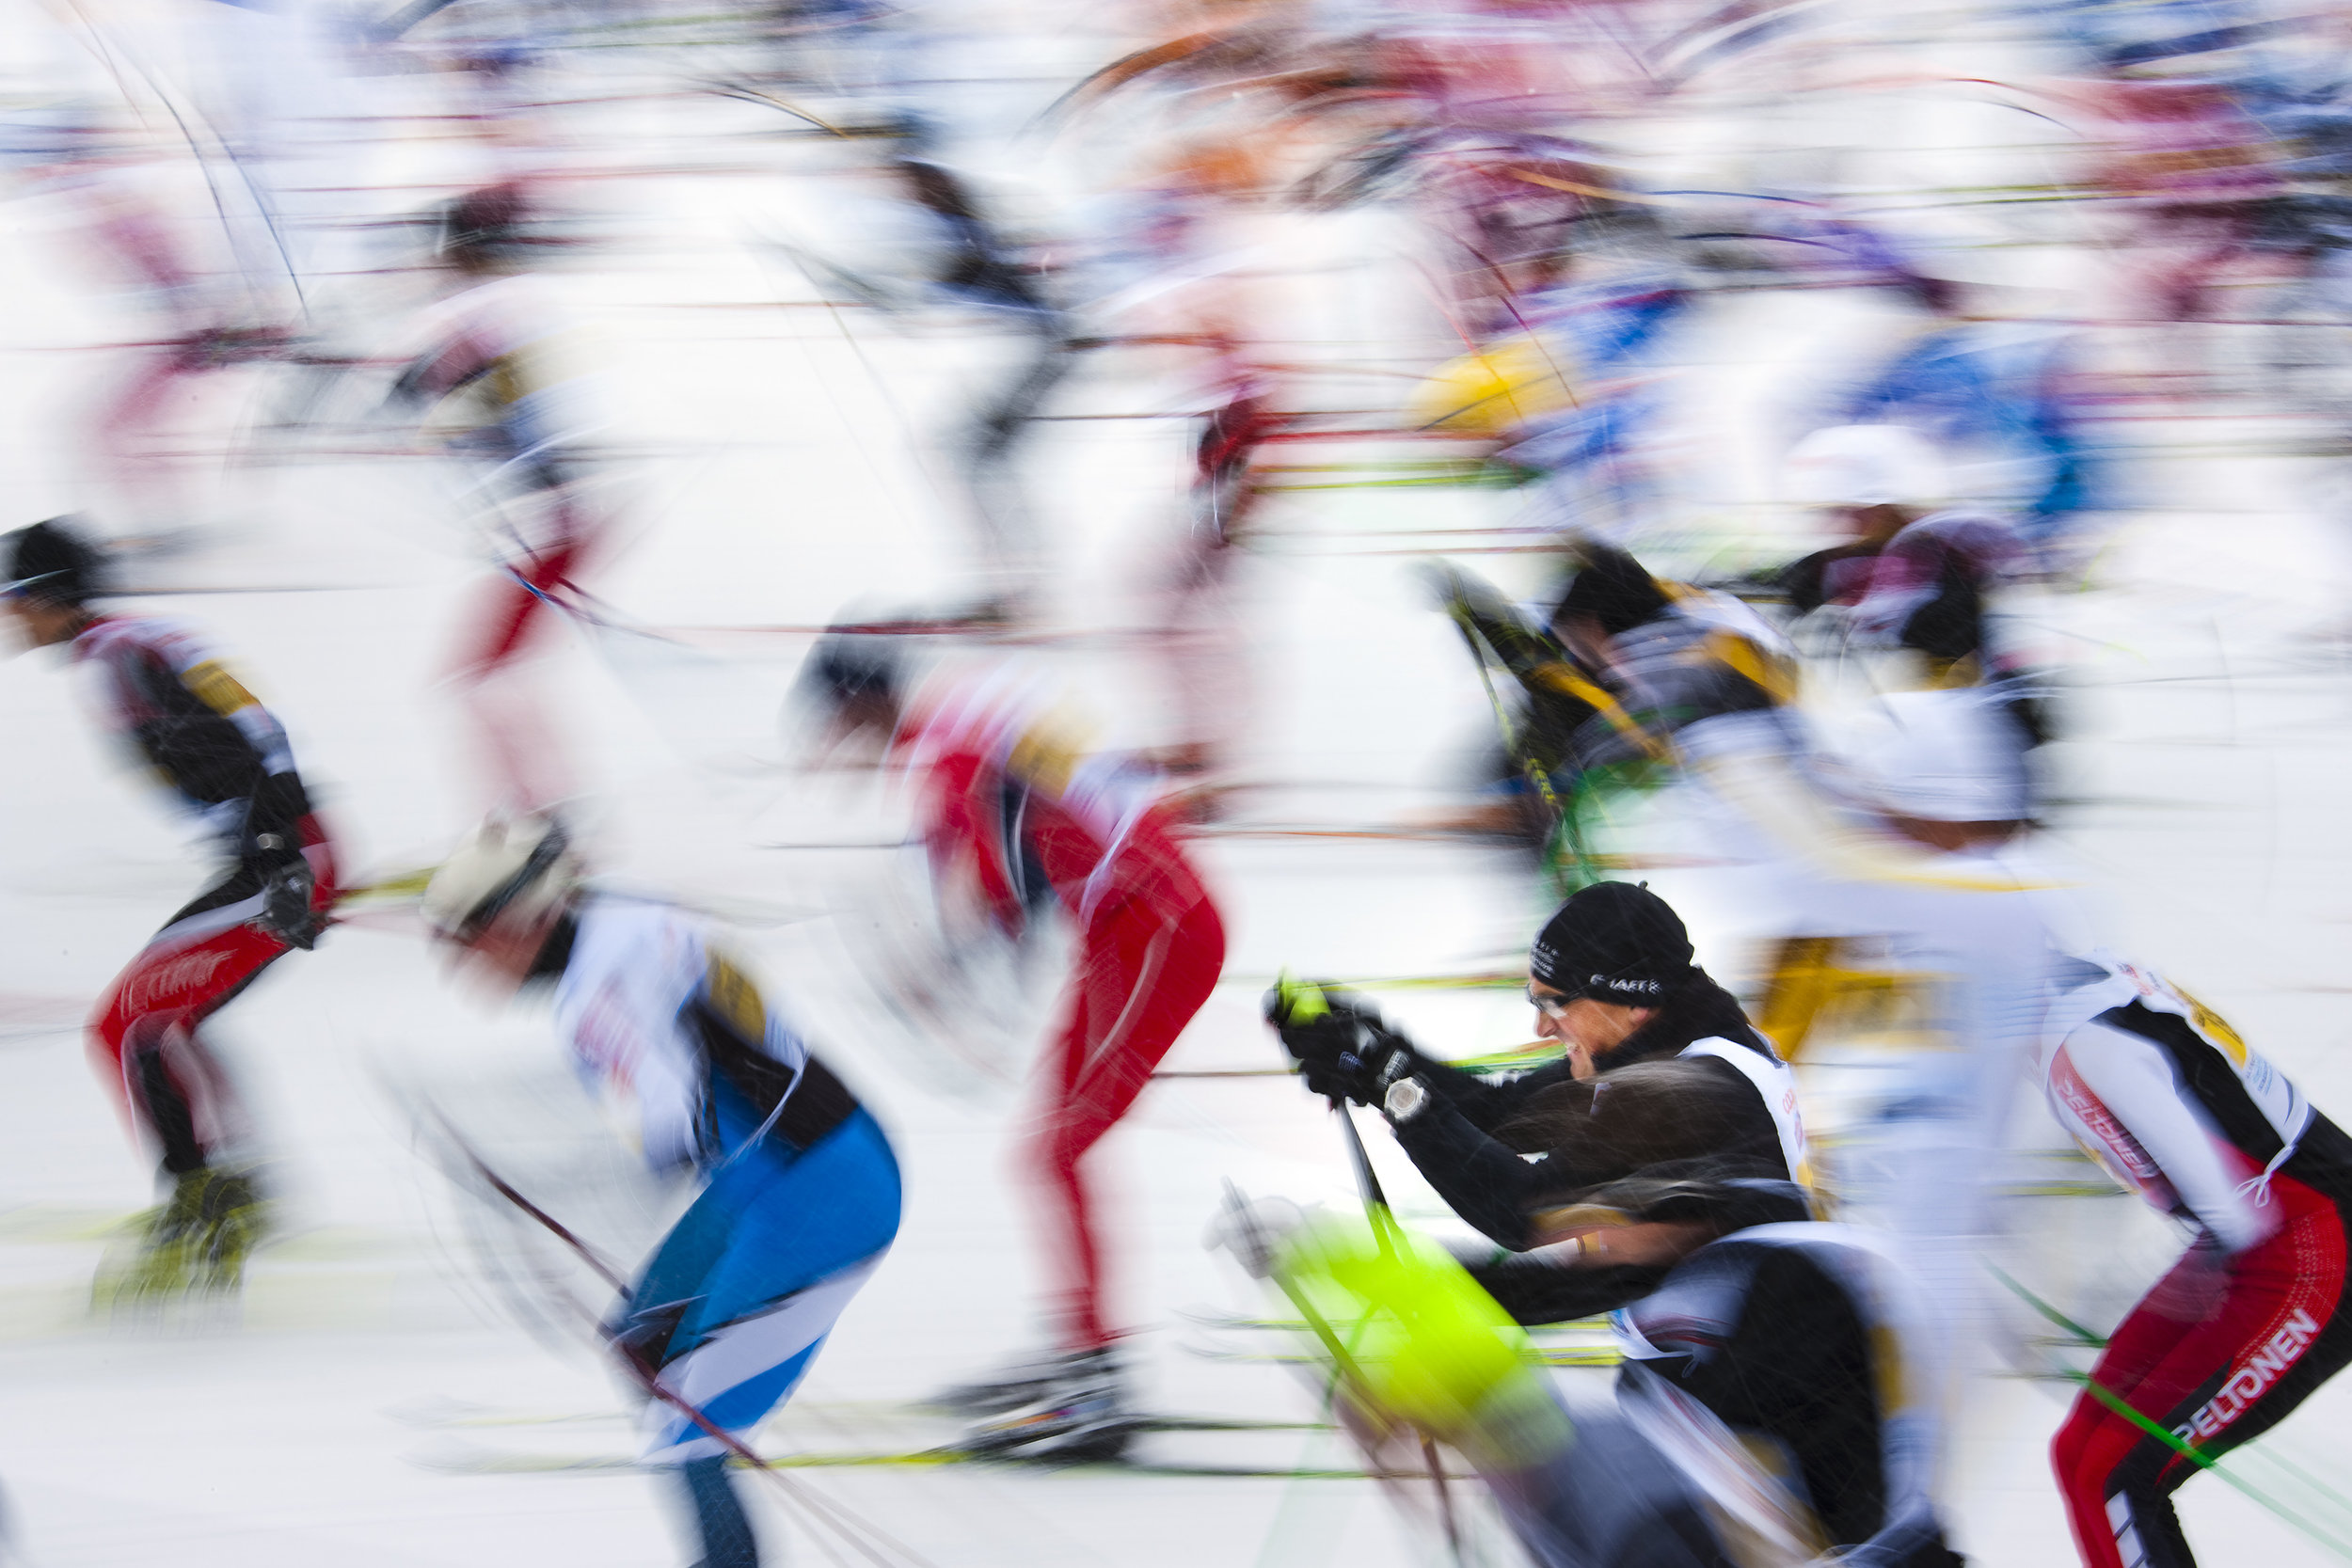 Cross country skiers take their start to race over the frozen lake Sils during the Engadin Ski Marathon near Sils March 13, 2011. More than 11'900 skiers registered in the 42.2 km race between Maloja and S-chanf near the Swiss mountain resort of St. Moritz. REUTERS/Valentin Flauraud (SWITZERLAND)